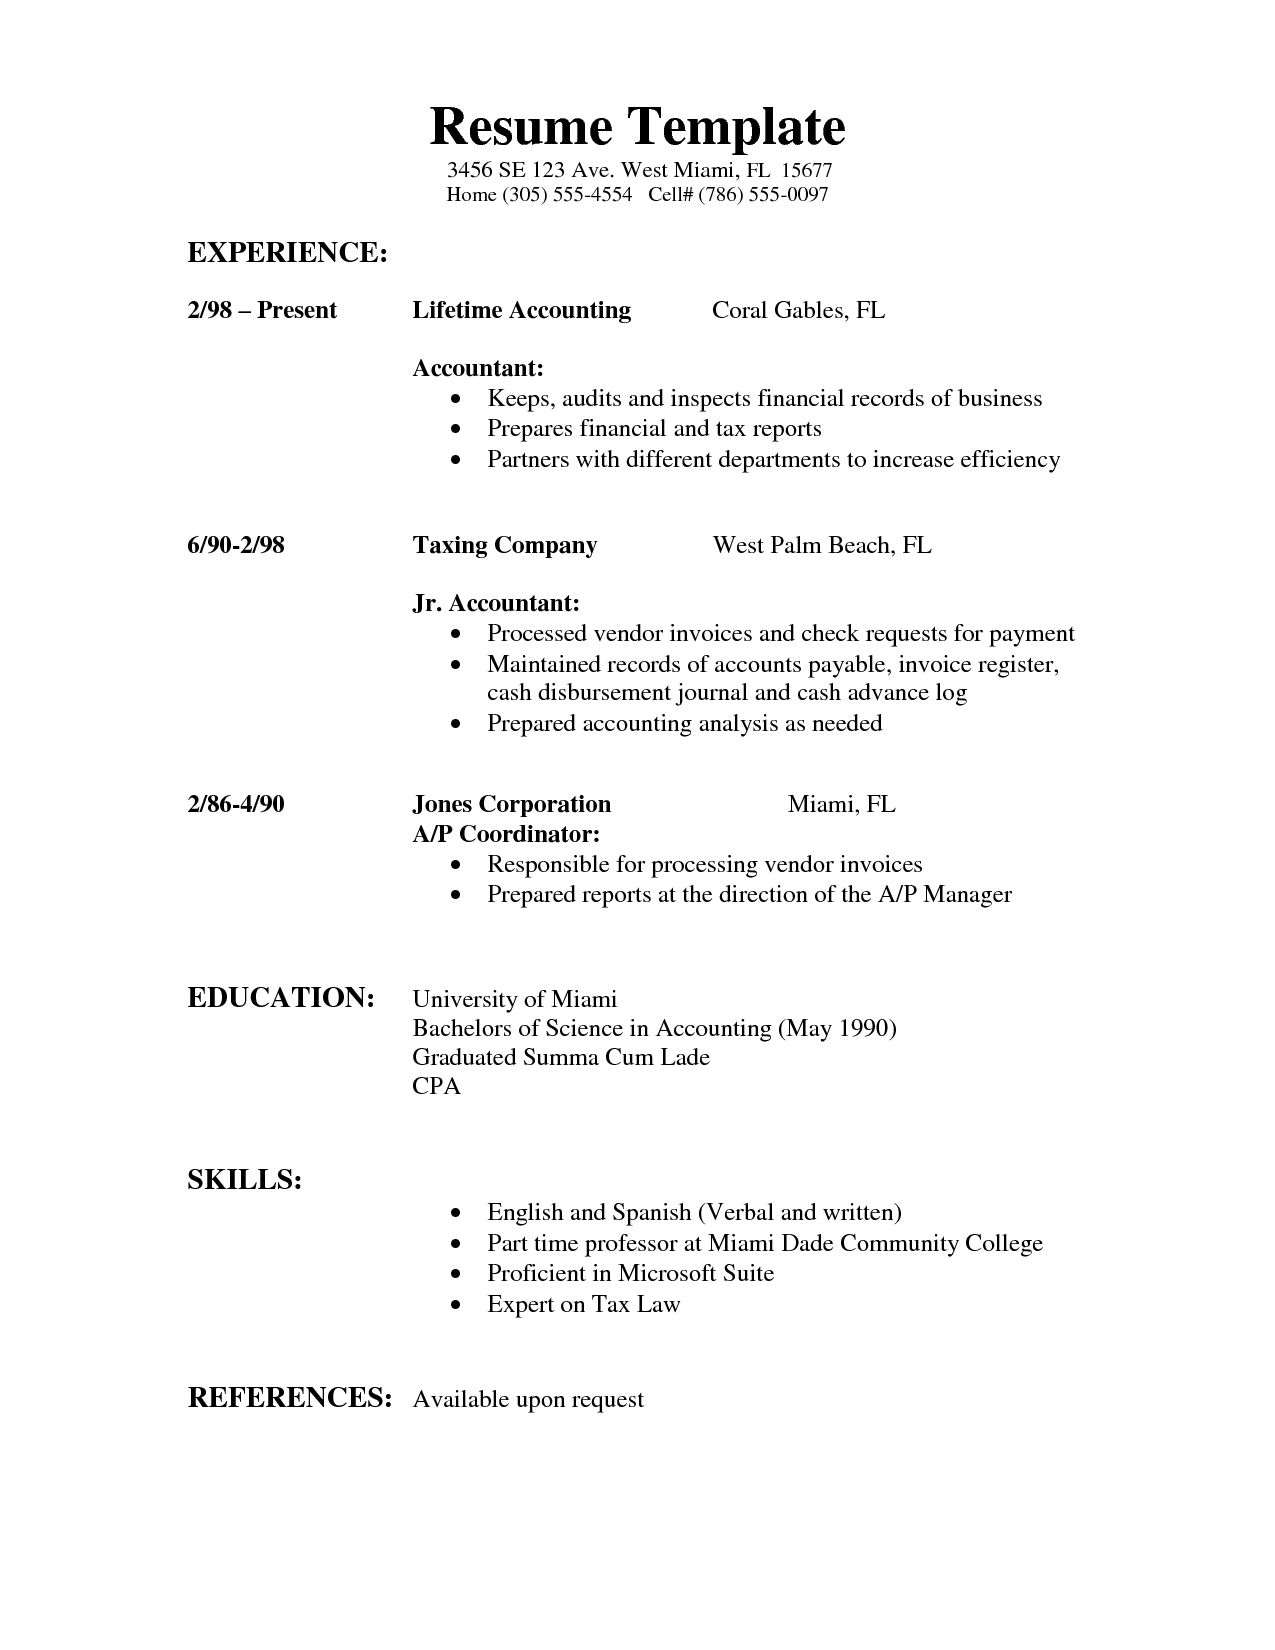 Sample Resume Simple L Andr Resume Examples 3 Letter And Resume